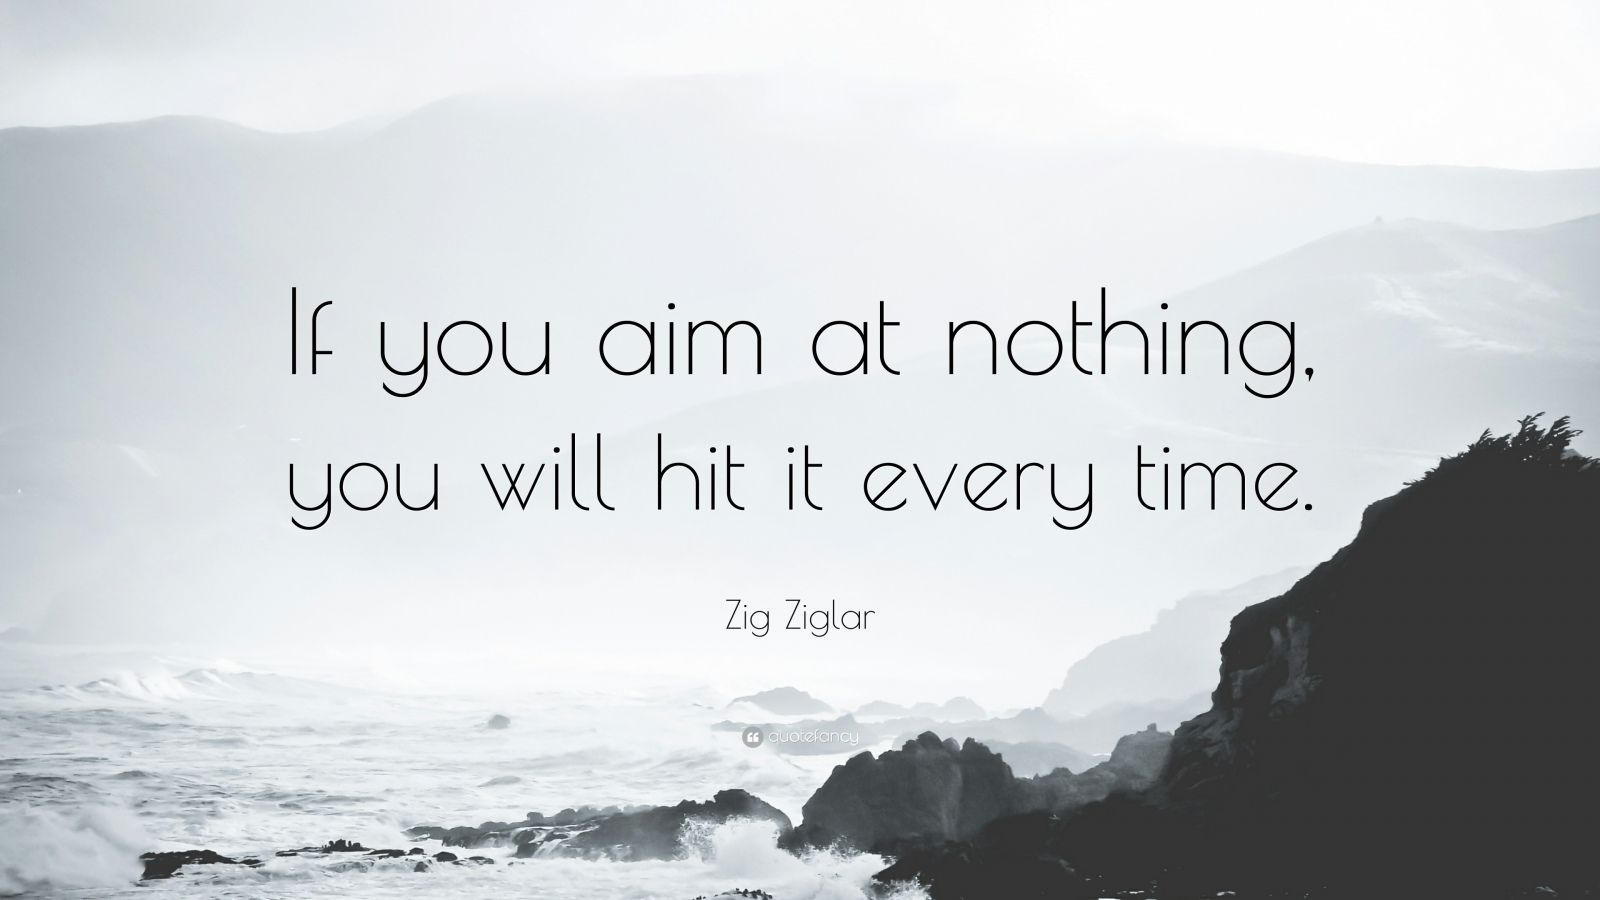 Quotes Zig Ziglar Amazing Zig Ziglar Quotes 100 Wallpapers  Quotefancy